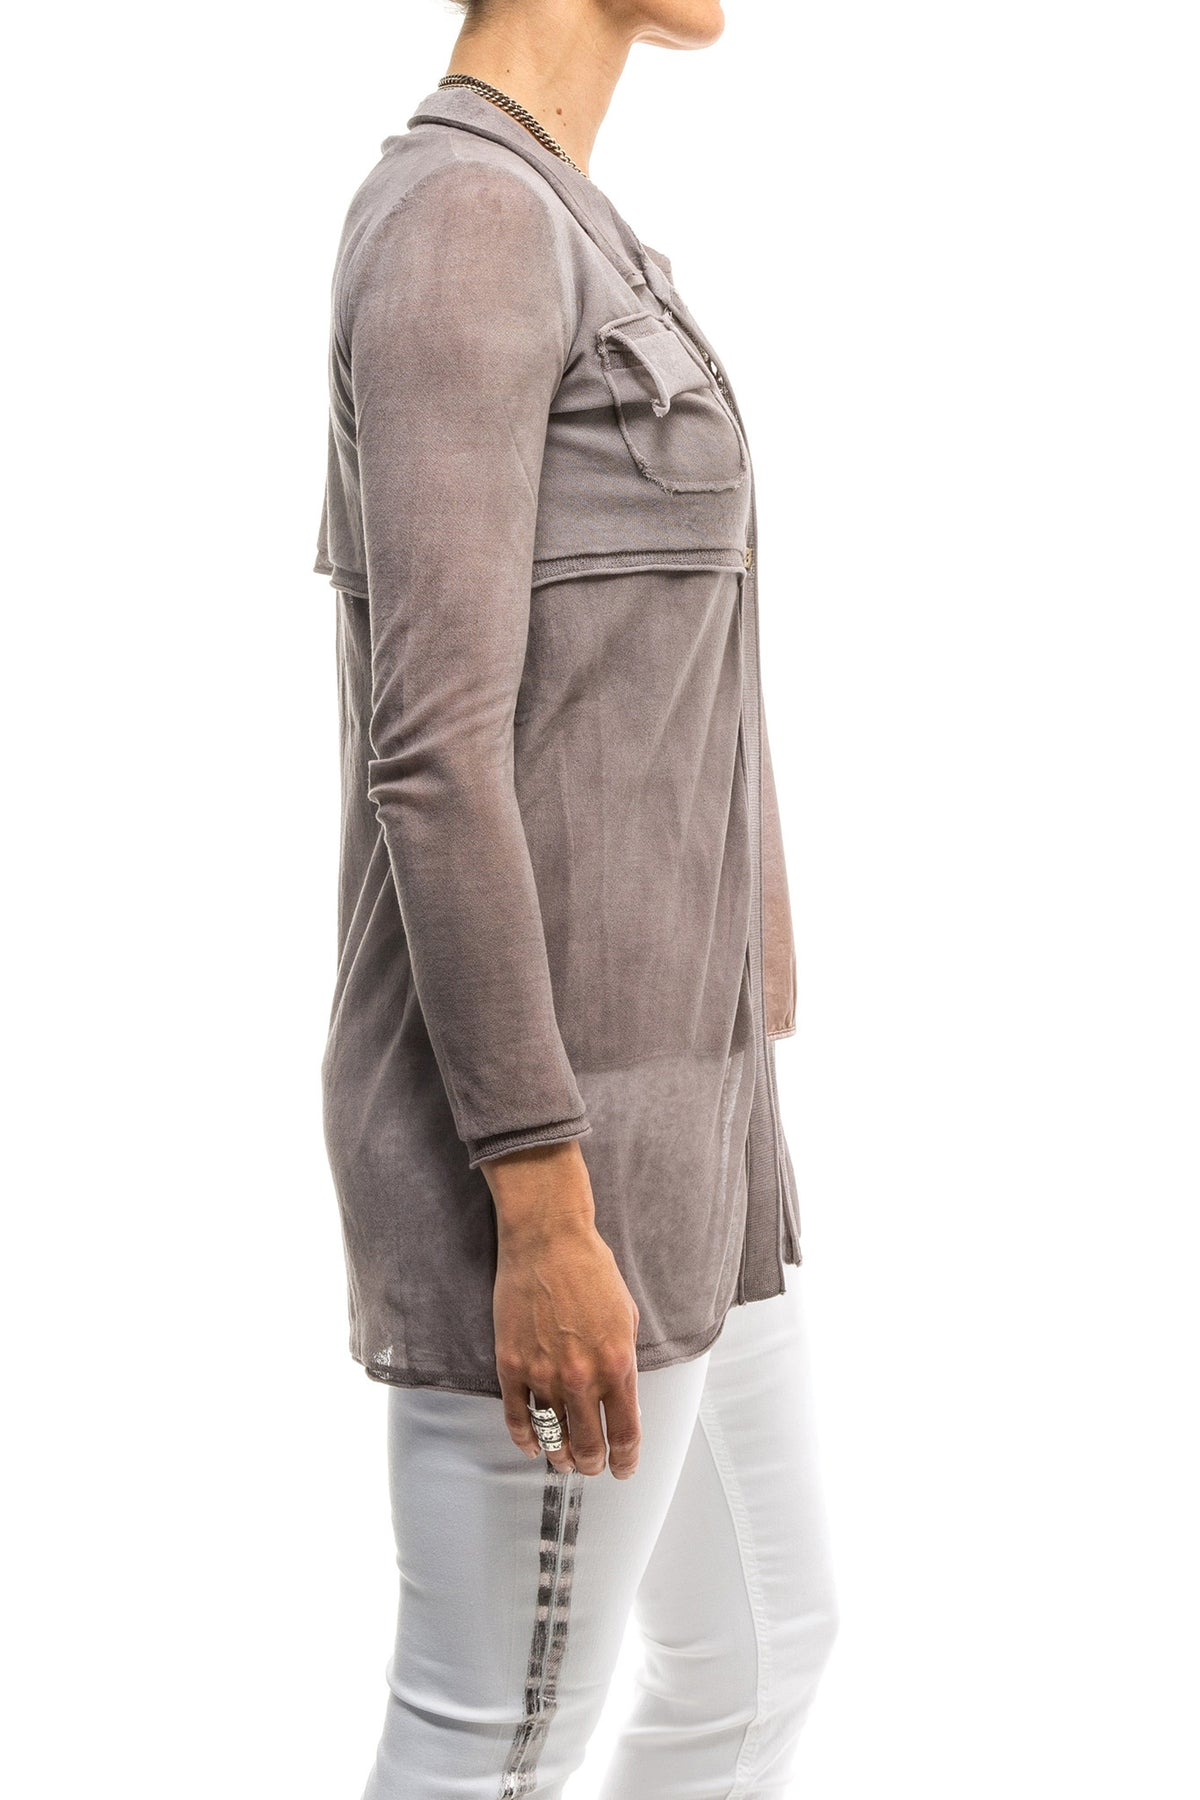 Inez 4 Button Long Top/Sweater W/ Attached Shrug In Rose